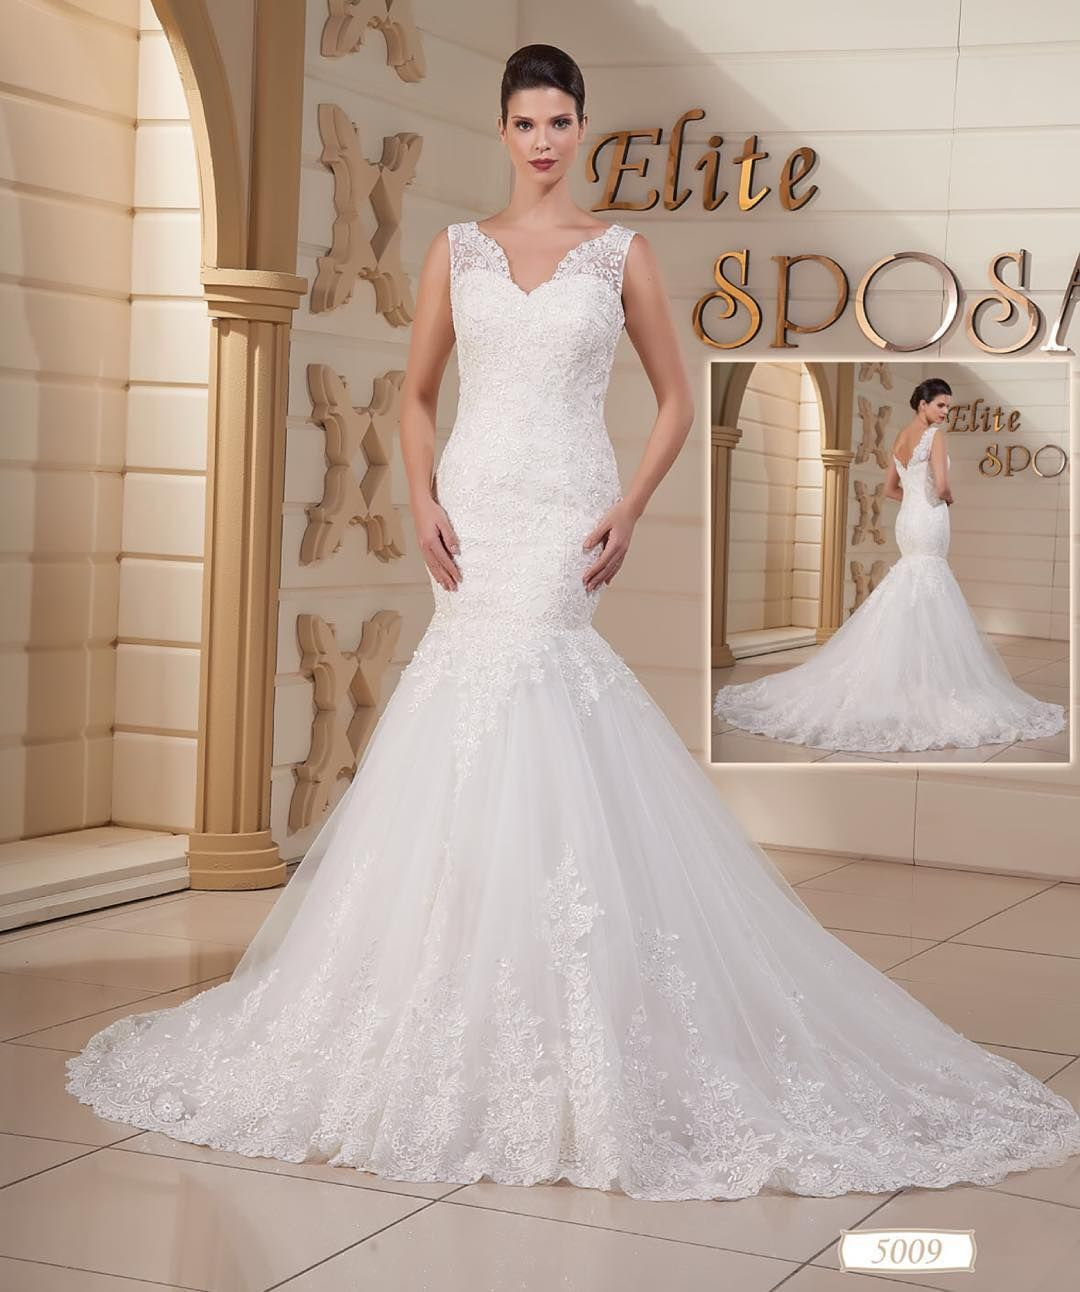 Wedding Dress Model N5009. Price $1000. Any Size and colour. Production time 7 Days. Worldwide shipping. Made in Europe. For order WhatsApp 97150-594-84-34 #wedding #weddingdress #weddingku #weddingku #weddingphotographer #weddinghair #weddinghair #weddings #weddingday #weddingring #weddingplanning #wedding_day #weddings #weddinginspiration #weddingflowers #weddingideas #weddingdecor #weddingseason #weddinggown #weddingstyle #weddingfun #weddingphotography #weddingaccessories #weddingphoto…